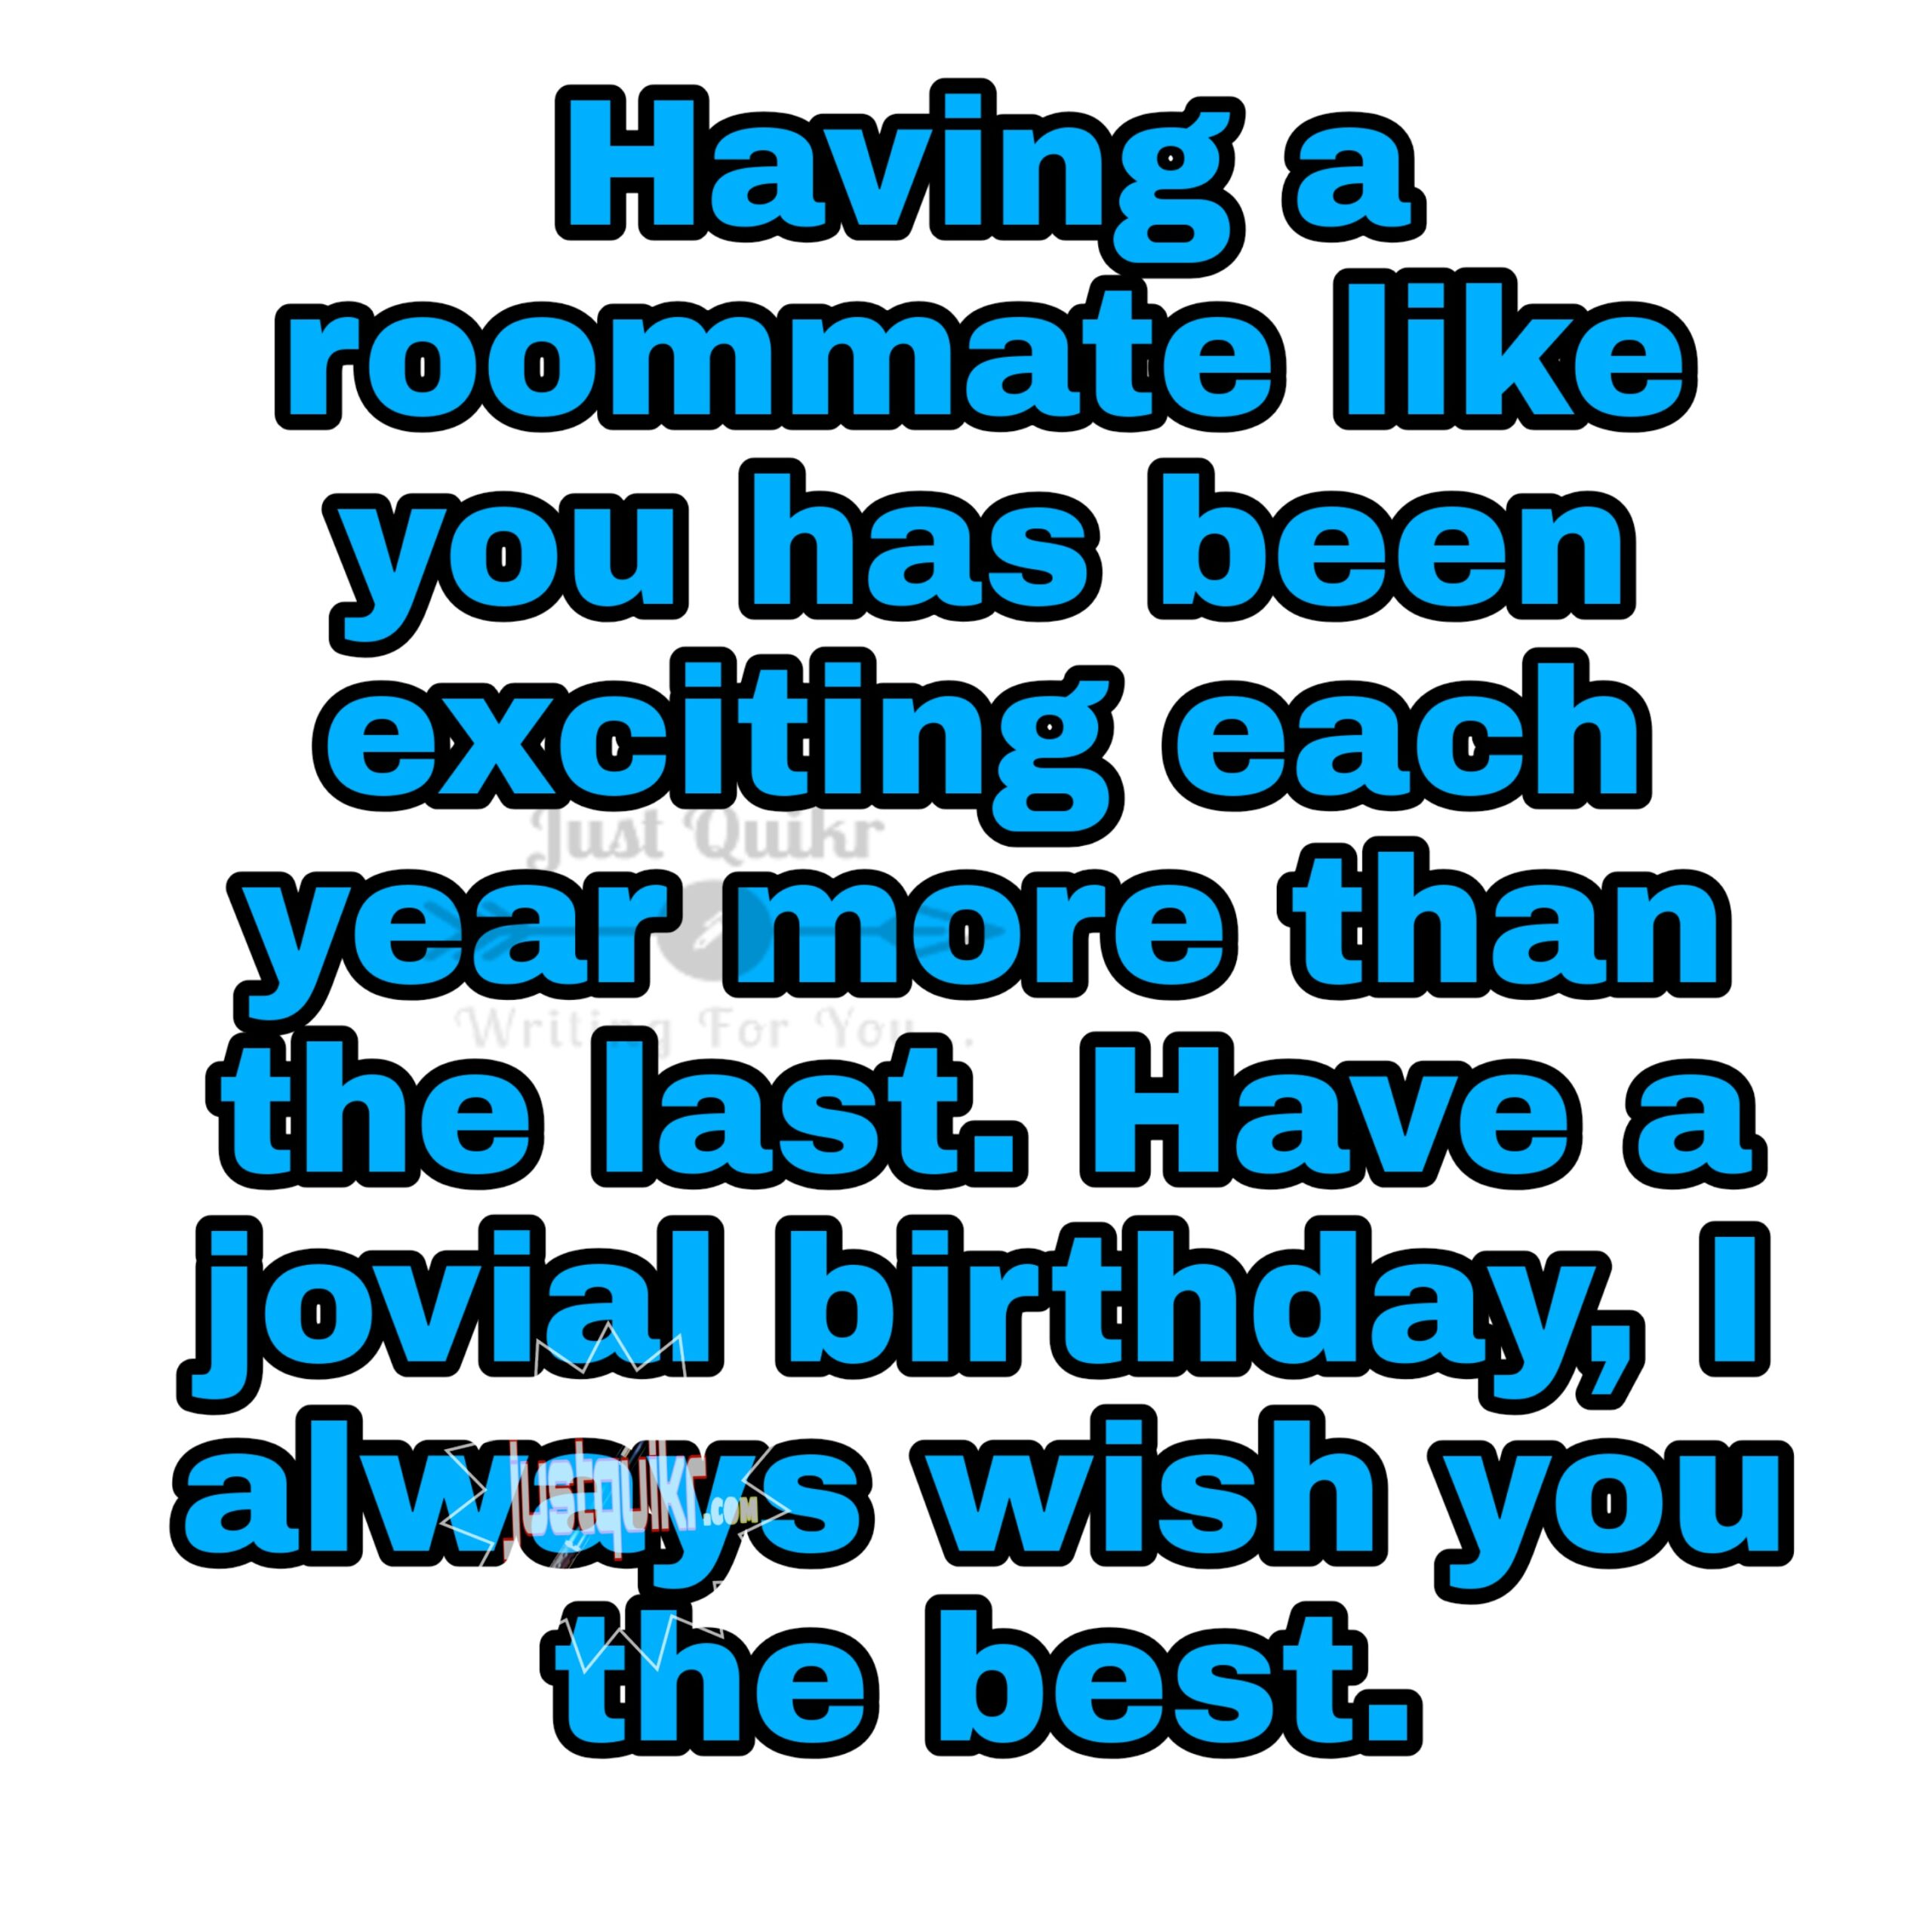 CreativeHappy Birthday Wishes Thoughts Quotes Lines Messages in English for Roommate